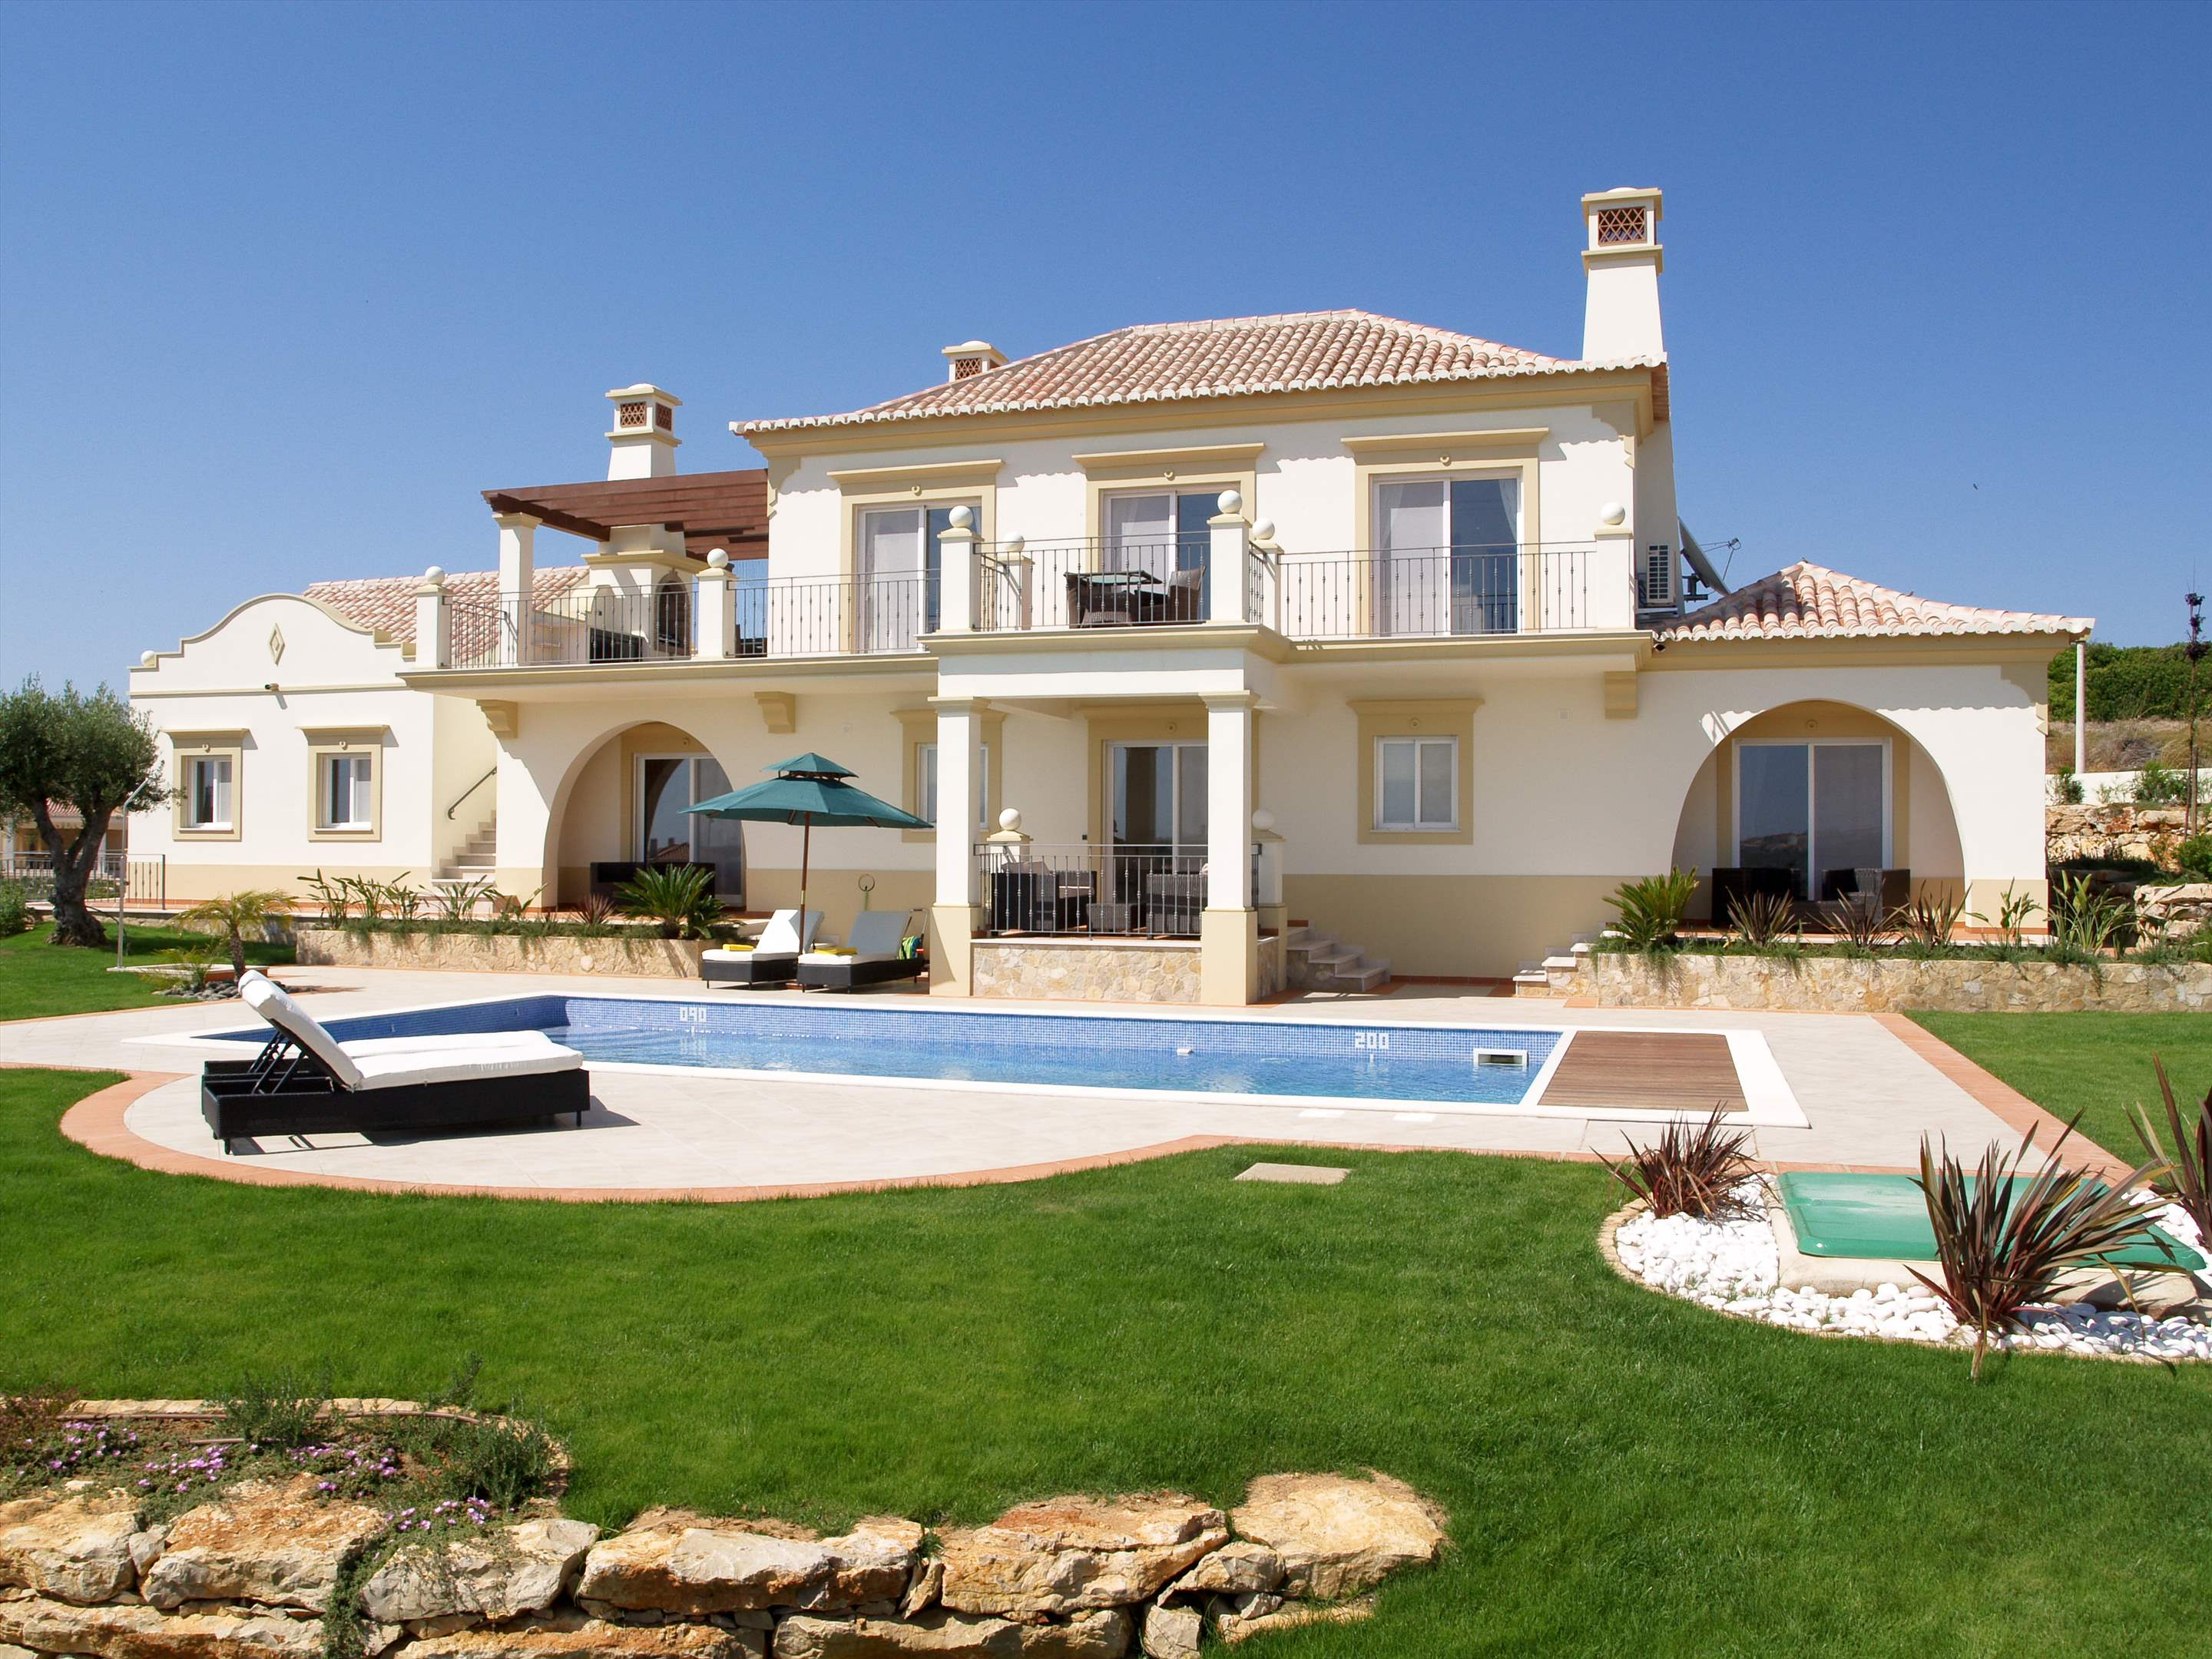 Martinhal Luxury Villa No.44, 3 bedroom villa in Martinhal Sagres, Algarve